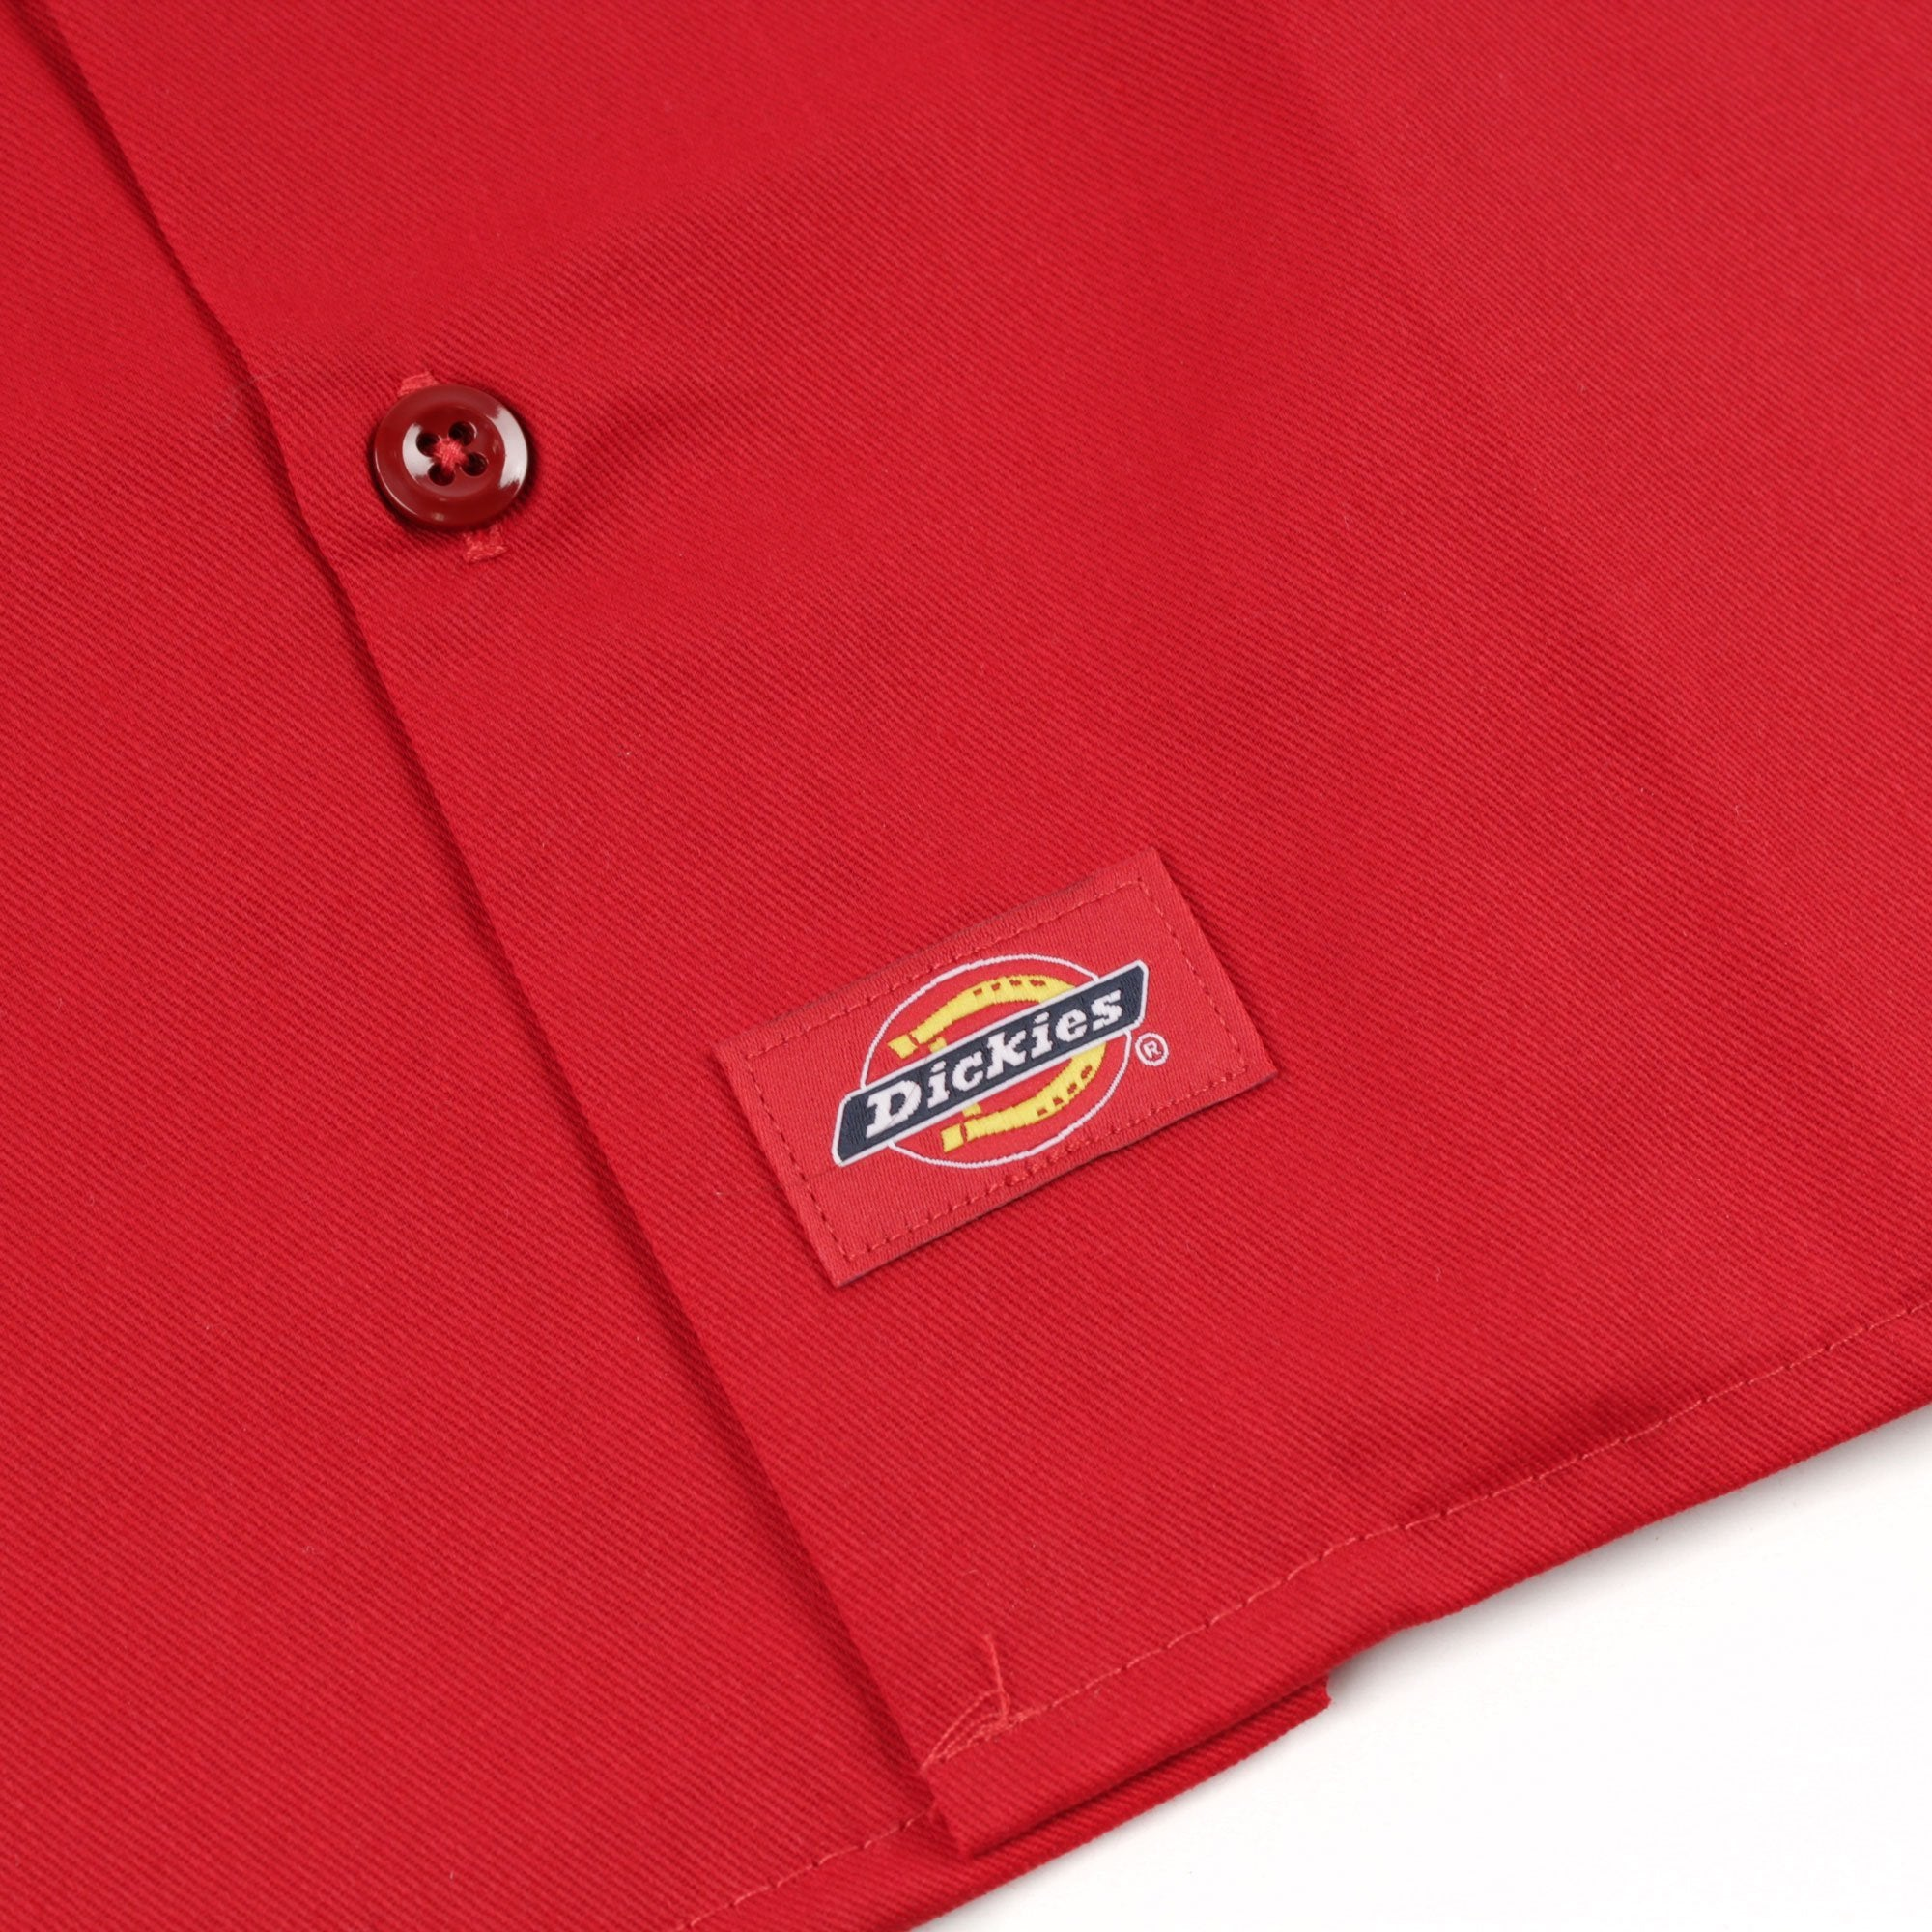 Beyond Bupont Work Shirt Product Photo #3